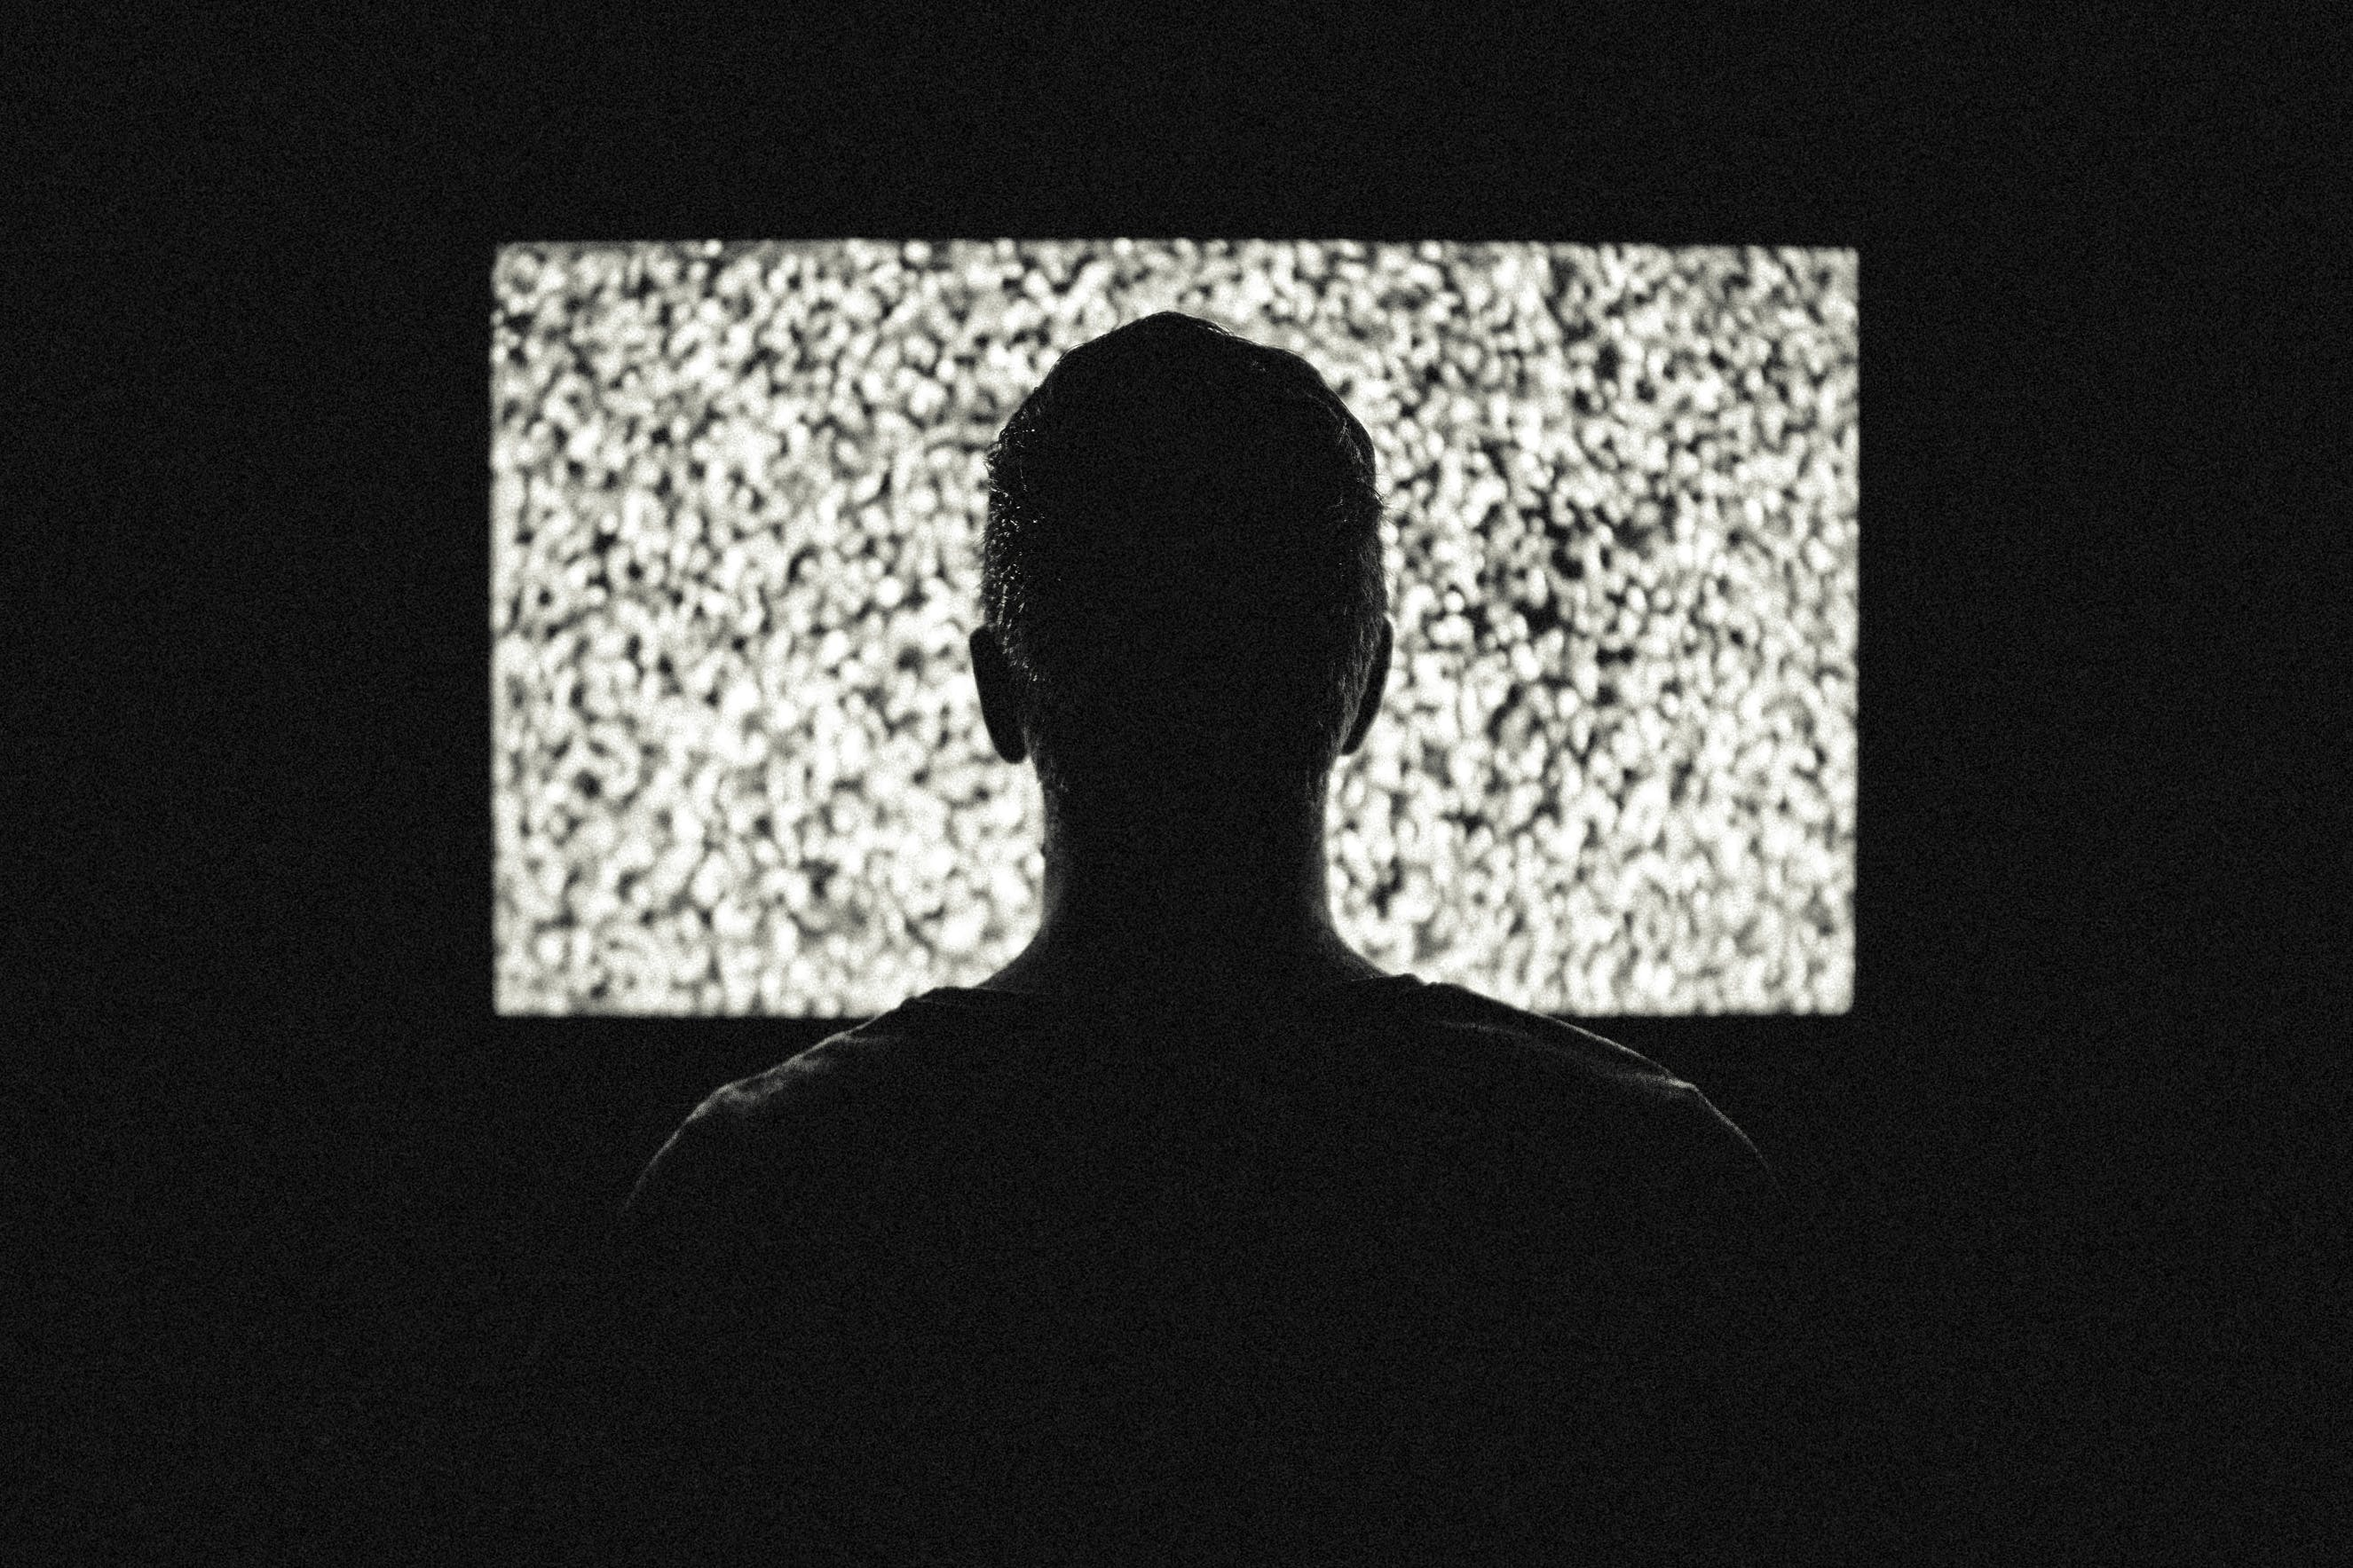 Silhouette of Man in Front of Tv